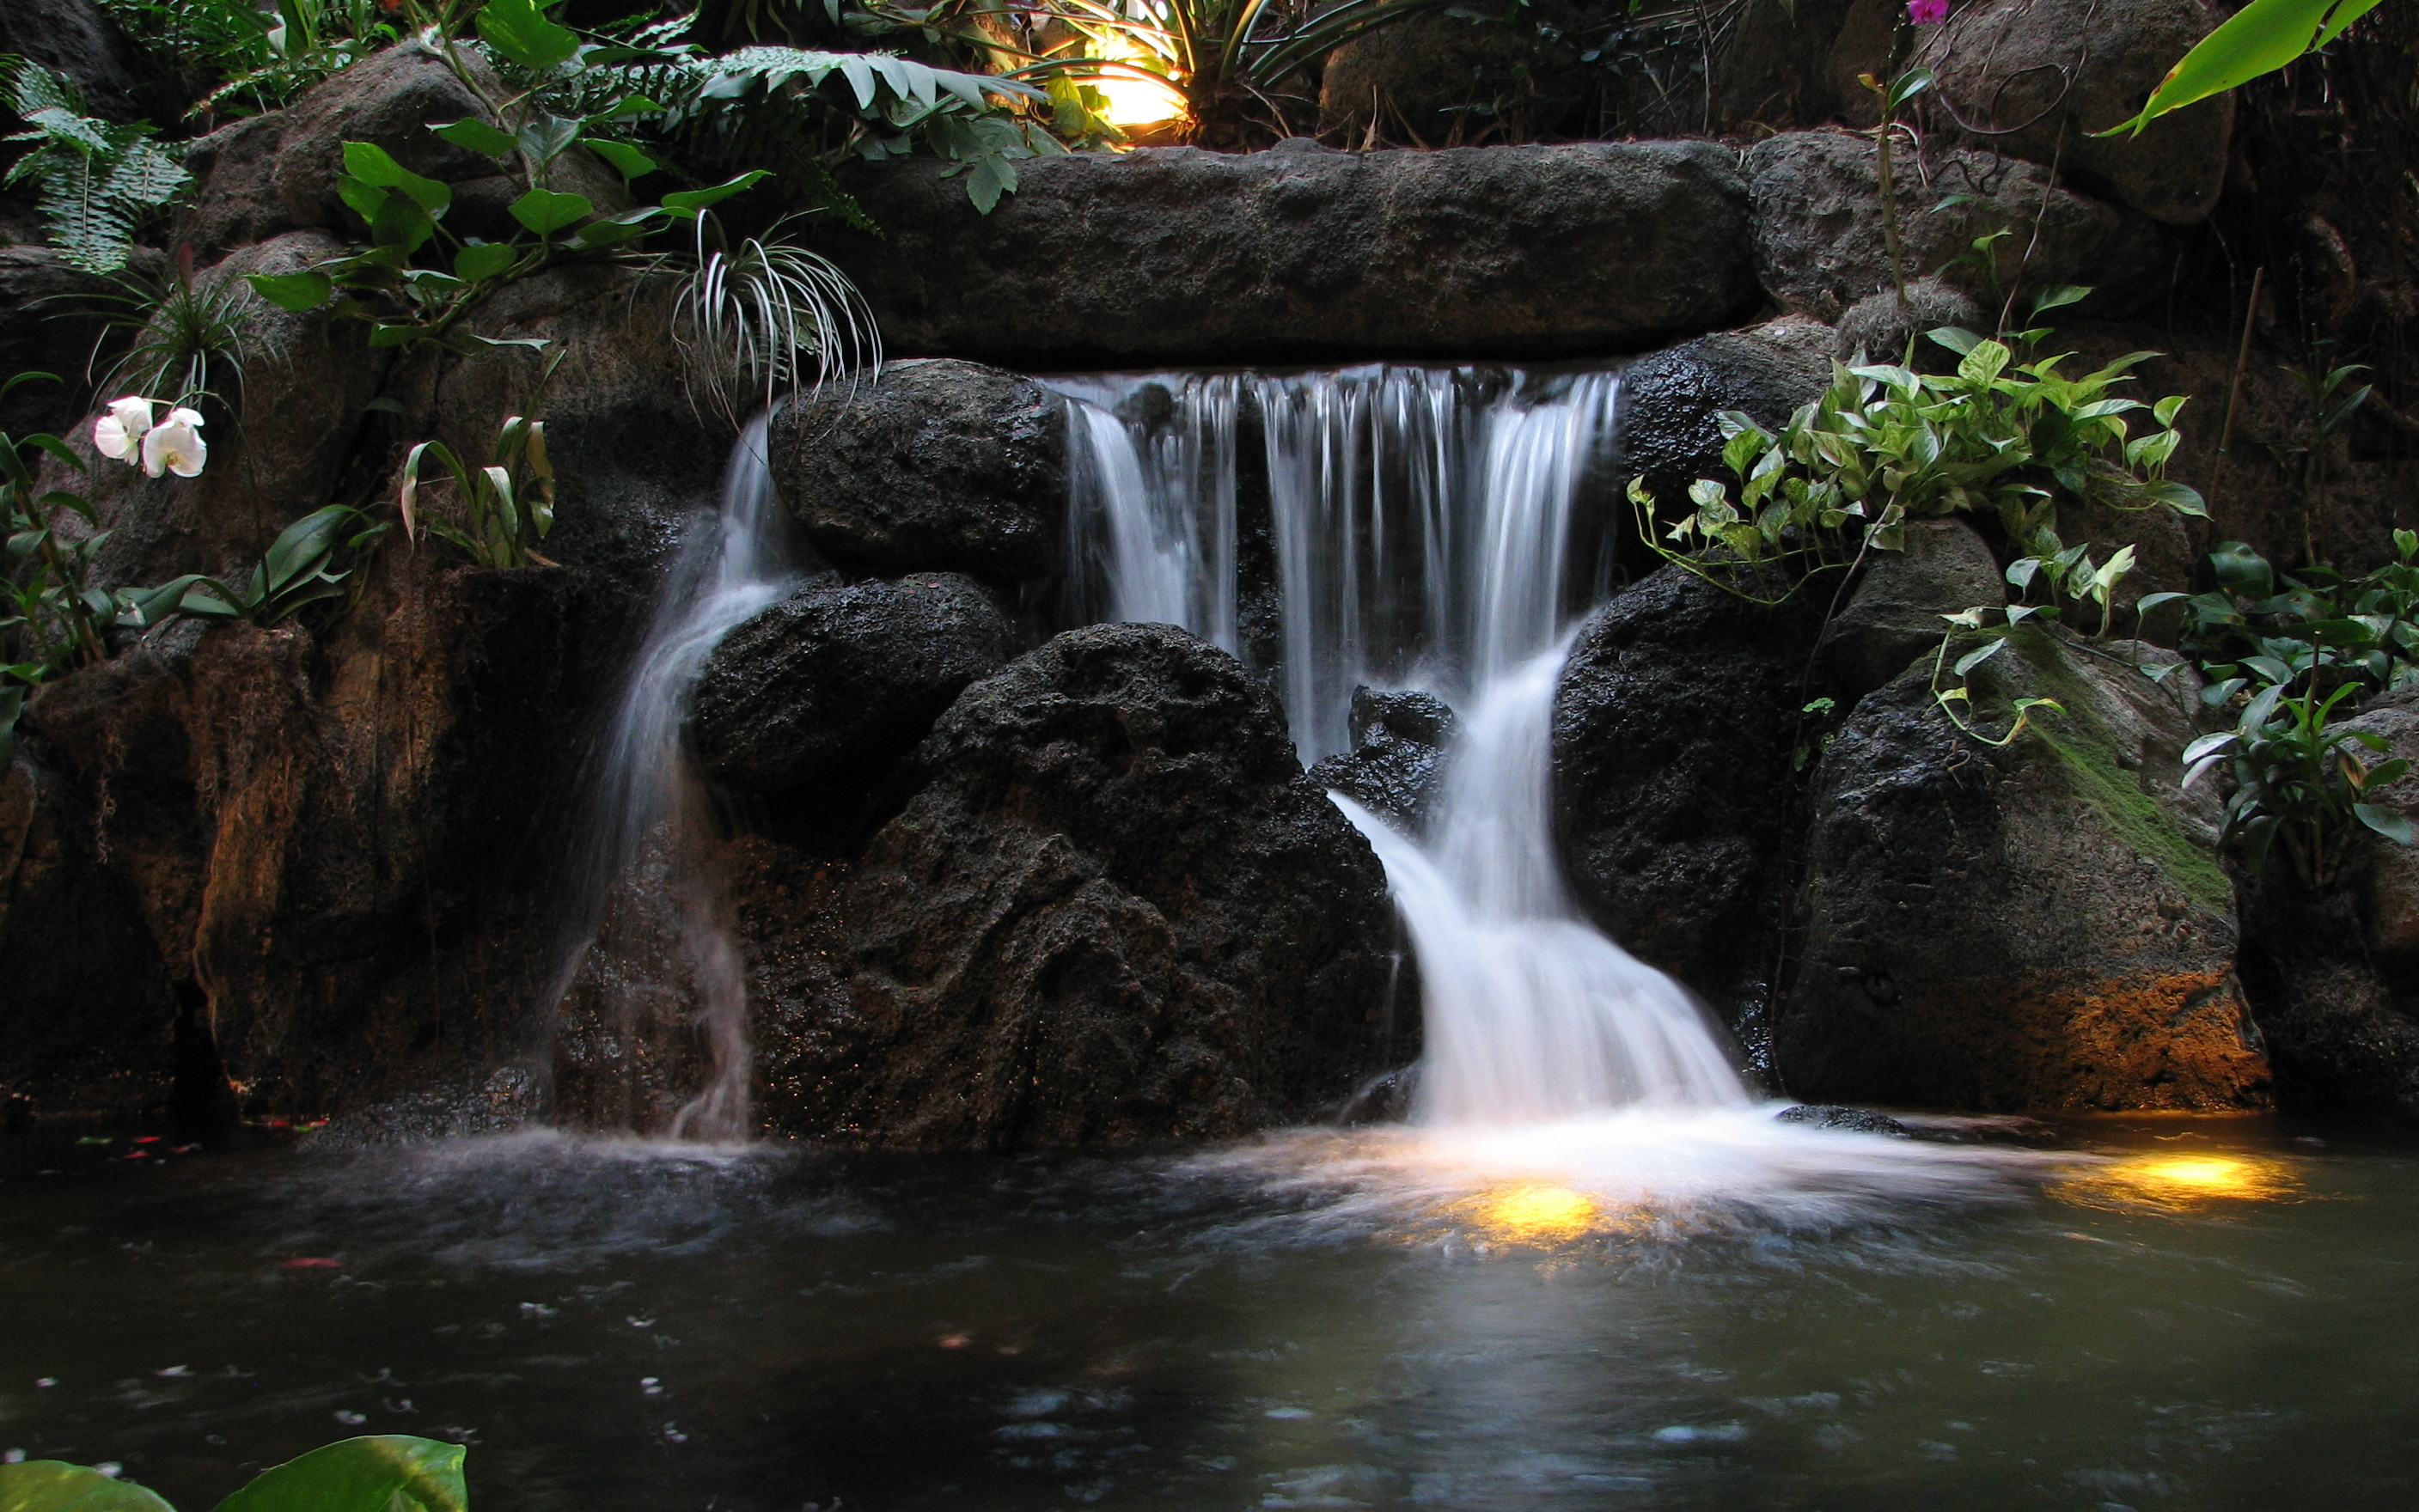 File:Waterfall at the Polynesian.jpg - Wikimedia Commons